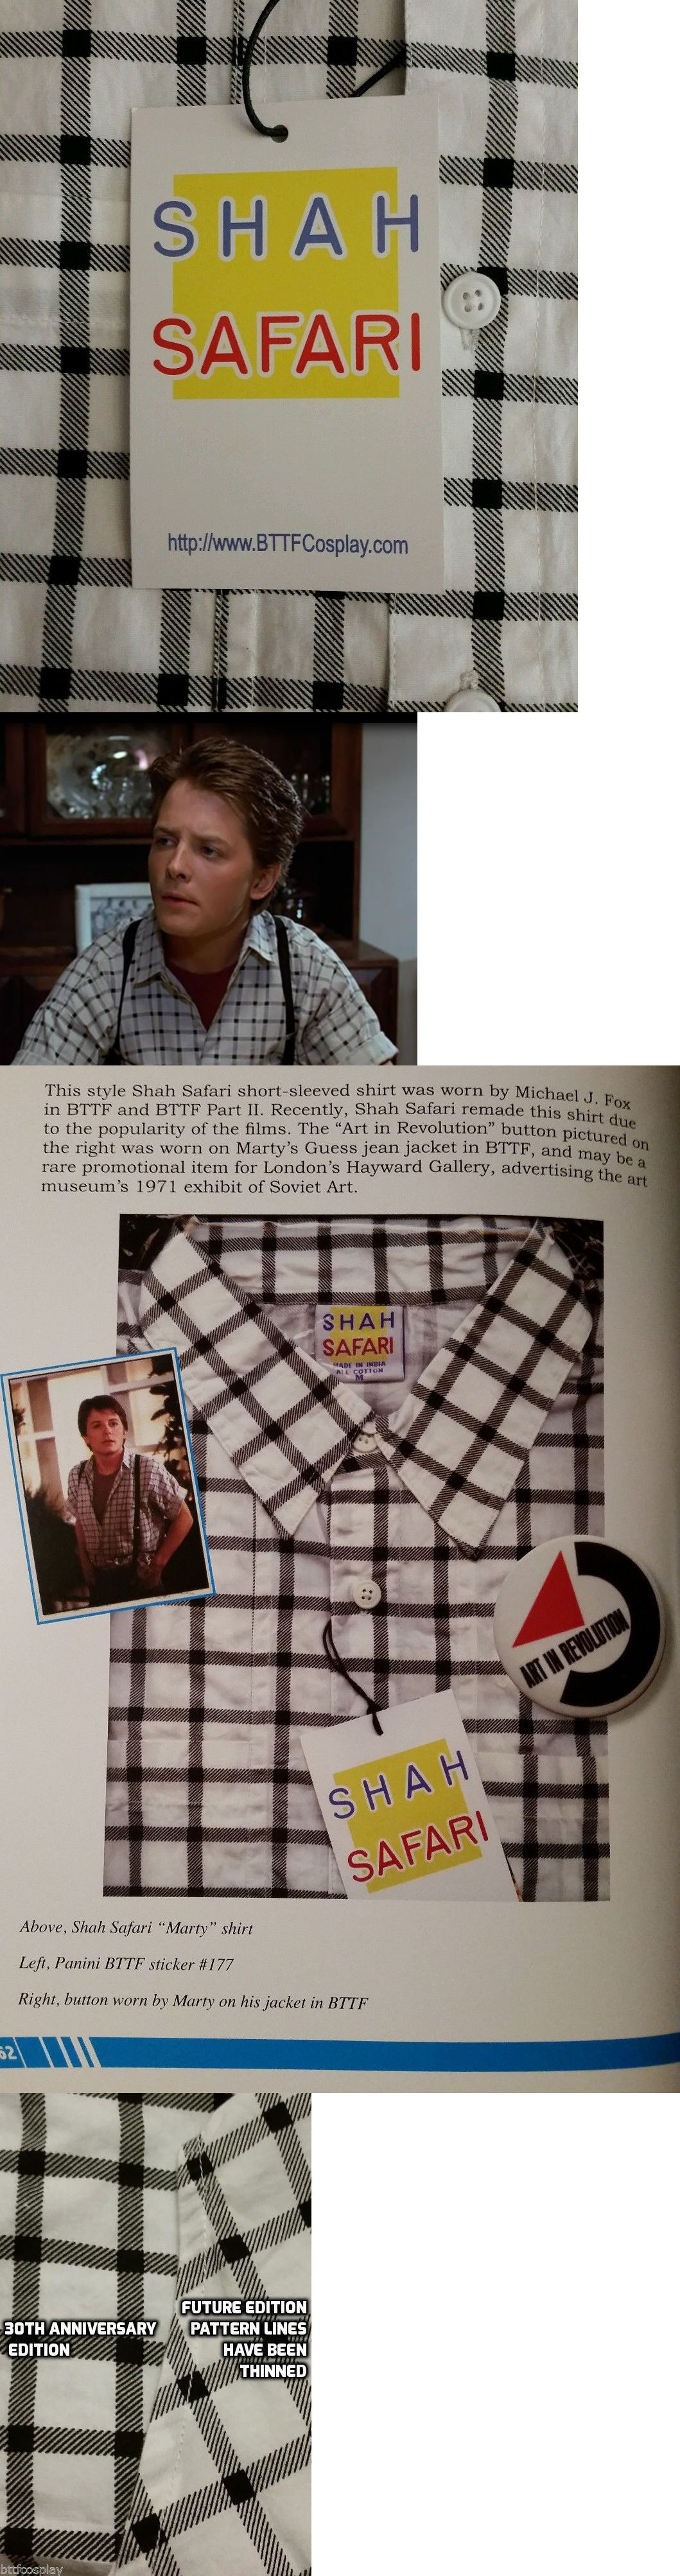 Official Shah Safari Marty McFly Back to the Future button up shirt